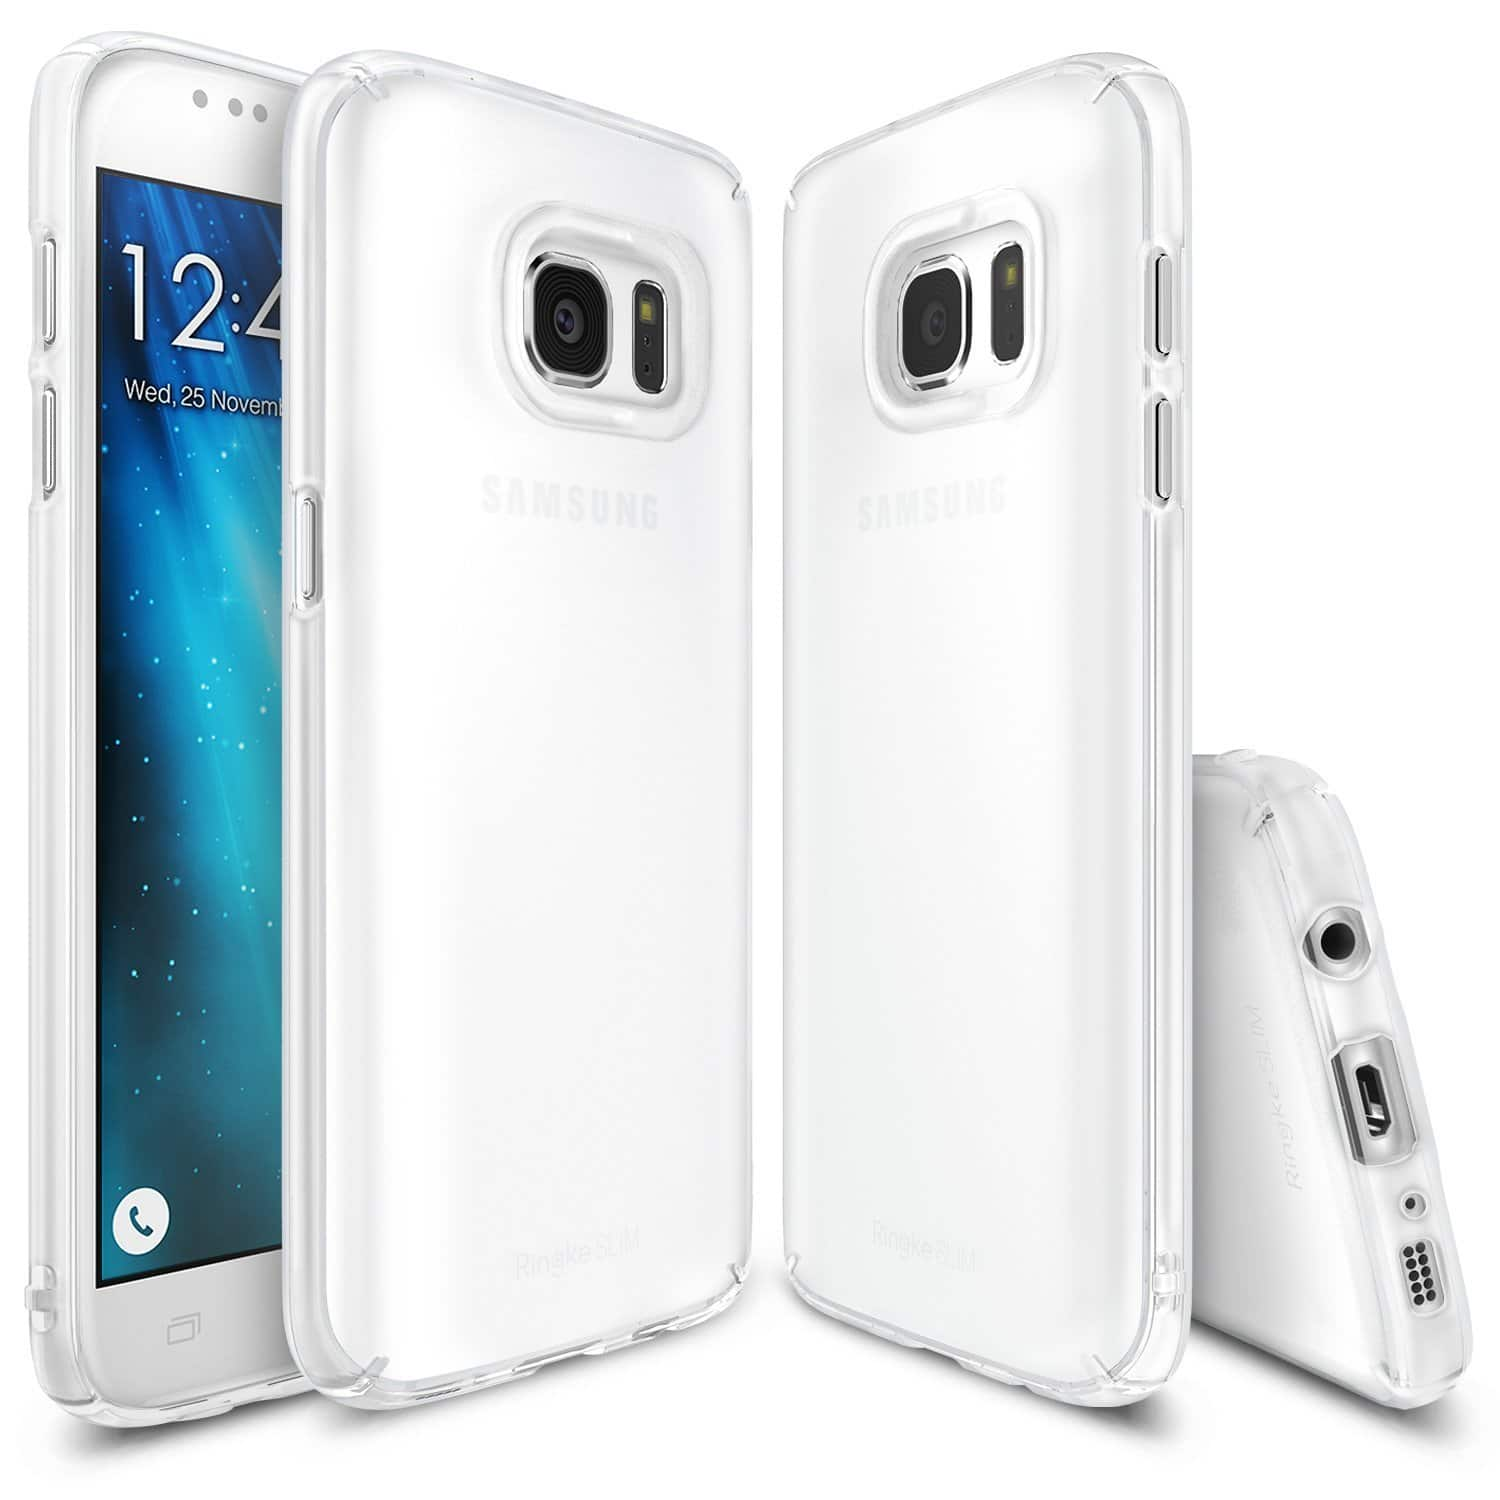 Ringke Cases for Galaxy S7/S7 Edge/Note 5, iPhone 6S/SE, HTC 10, Xperia Z5 Premium from $2.99 + Free Shipping